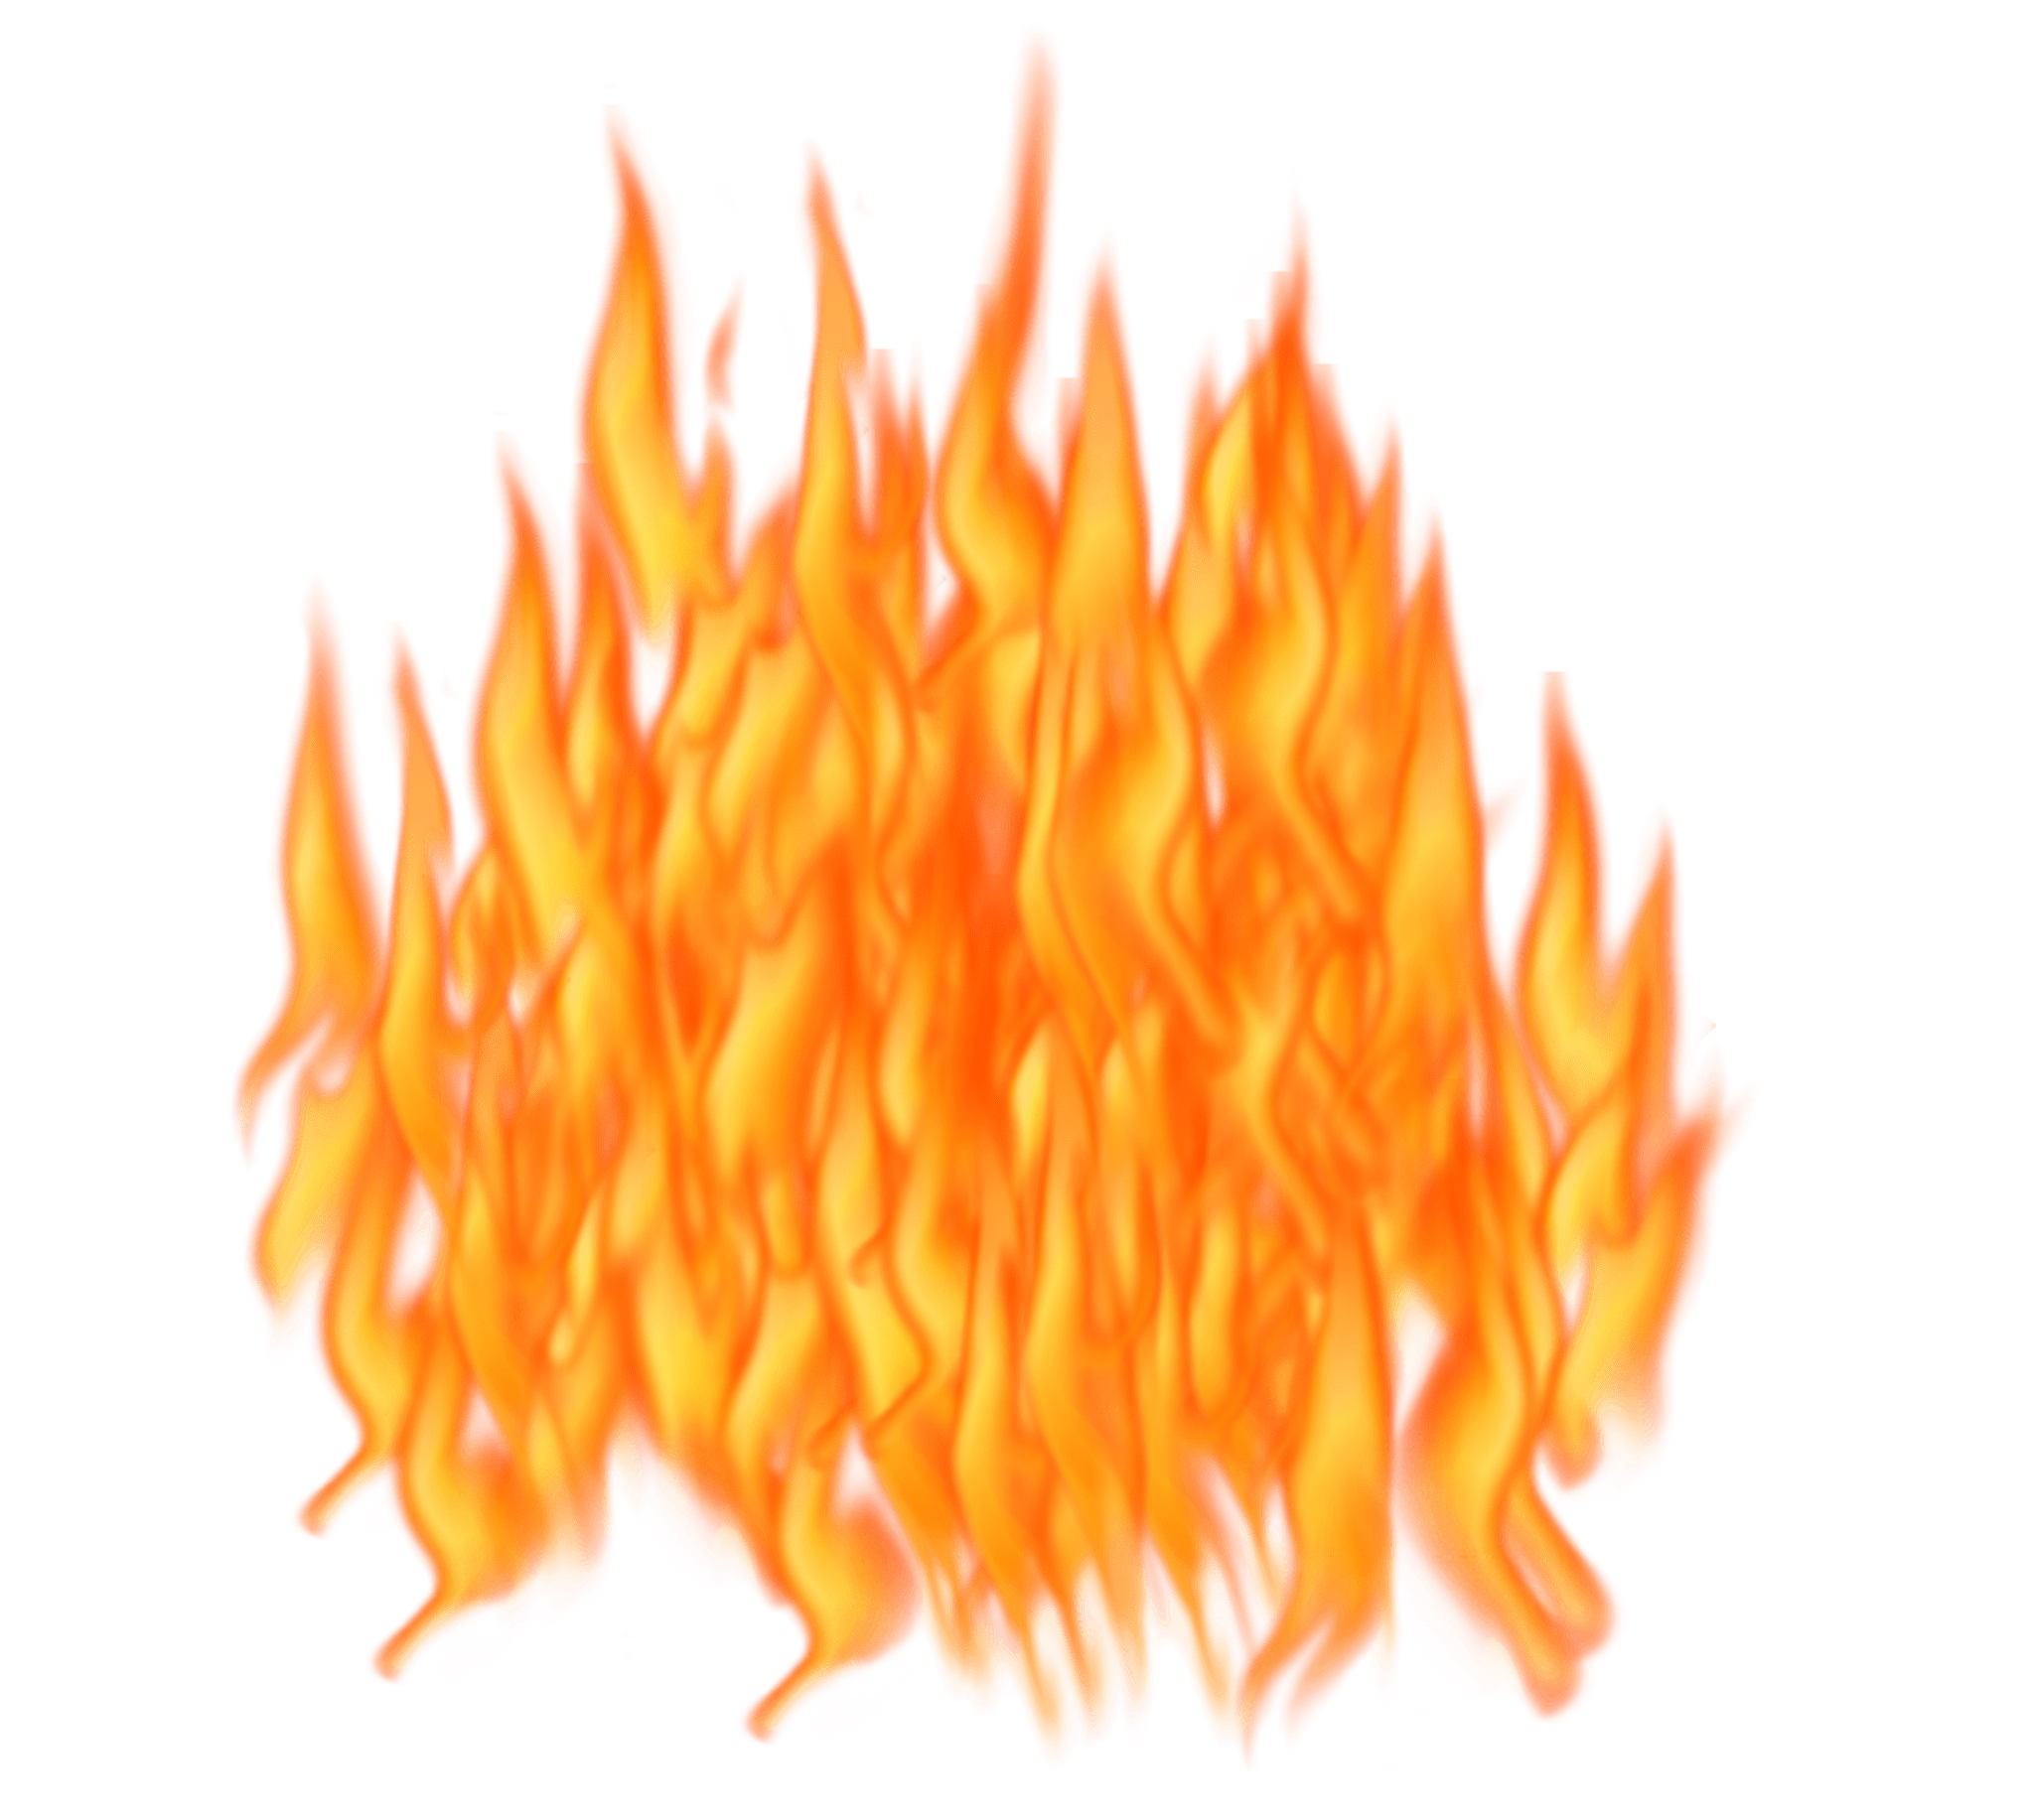 Fuego png. Fire photos